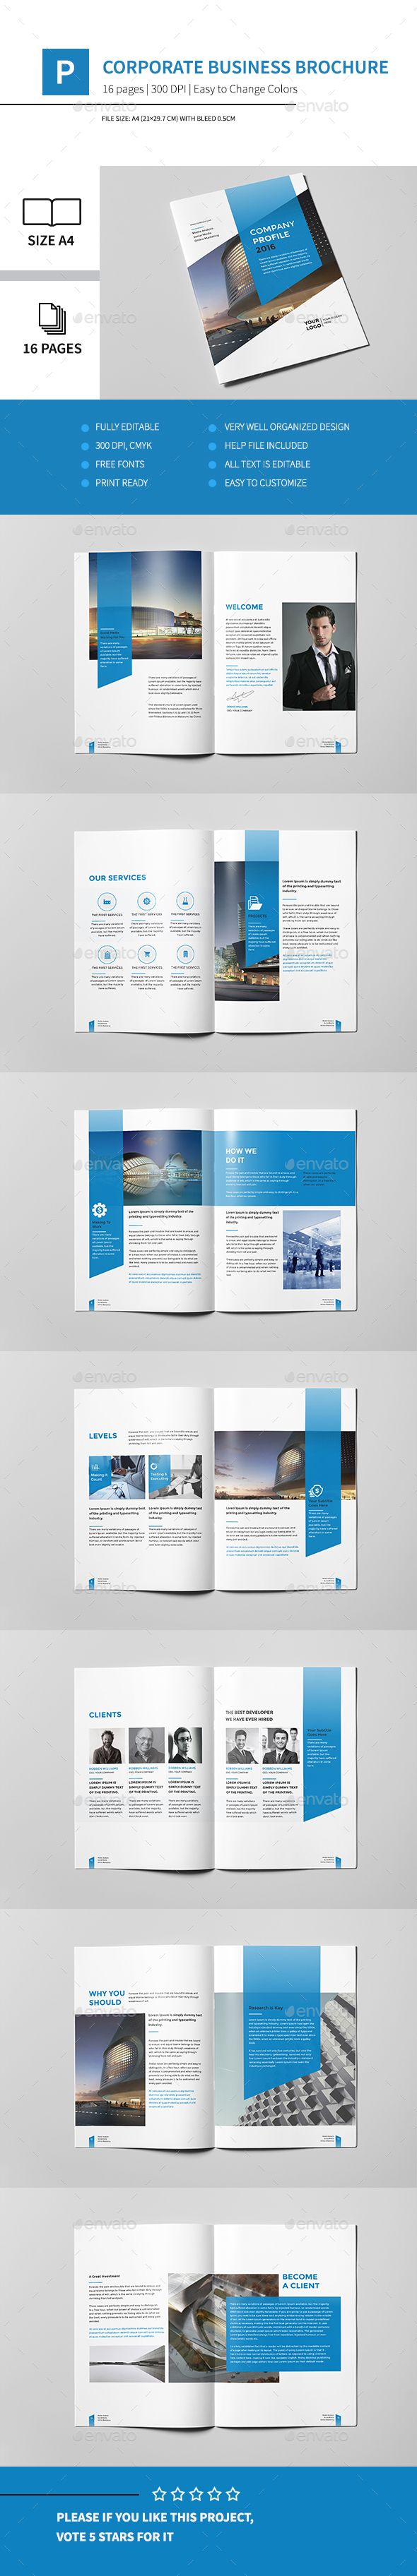 a4 brochure template - corporate business brochure 16 pages a4 business